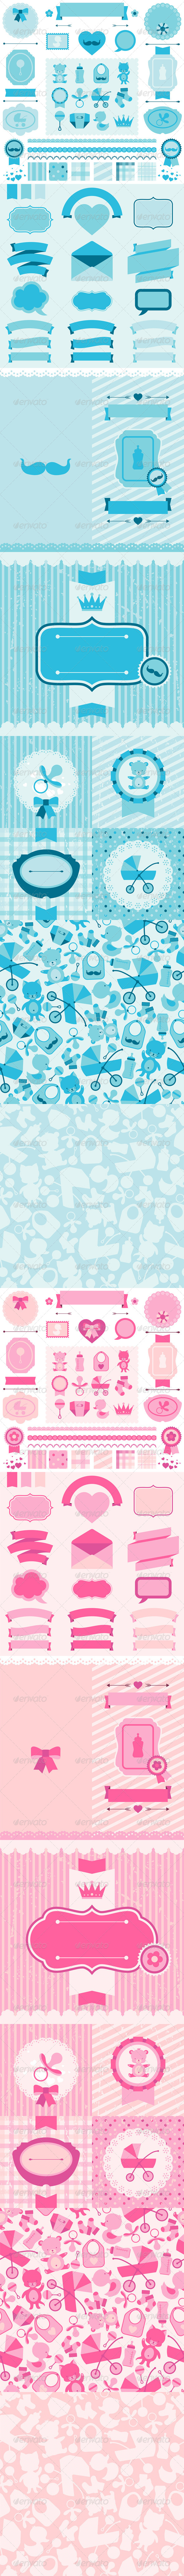 Boy and Girl Baby Shower Elements and Backgrounds. - Birthdays Seasons/Holidays